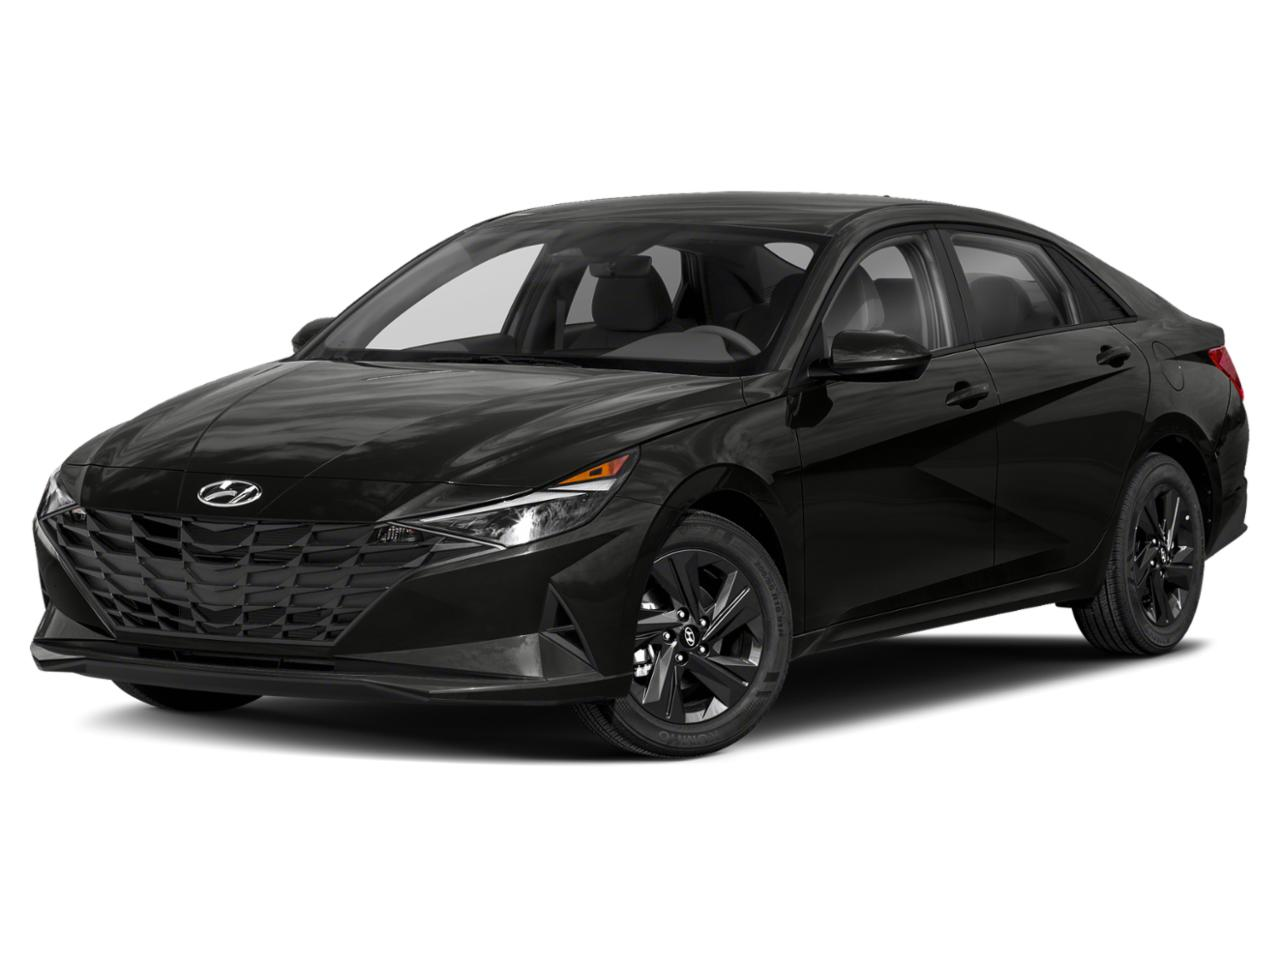 2021 Hyundai Elantra Vehicle Photo in O'Fallon, IL 62269